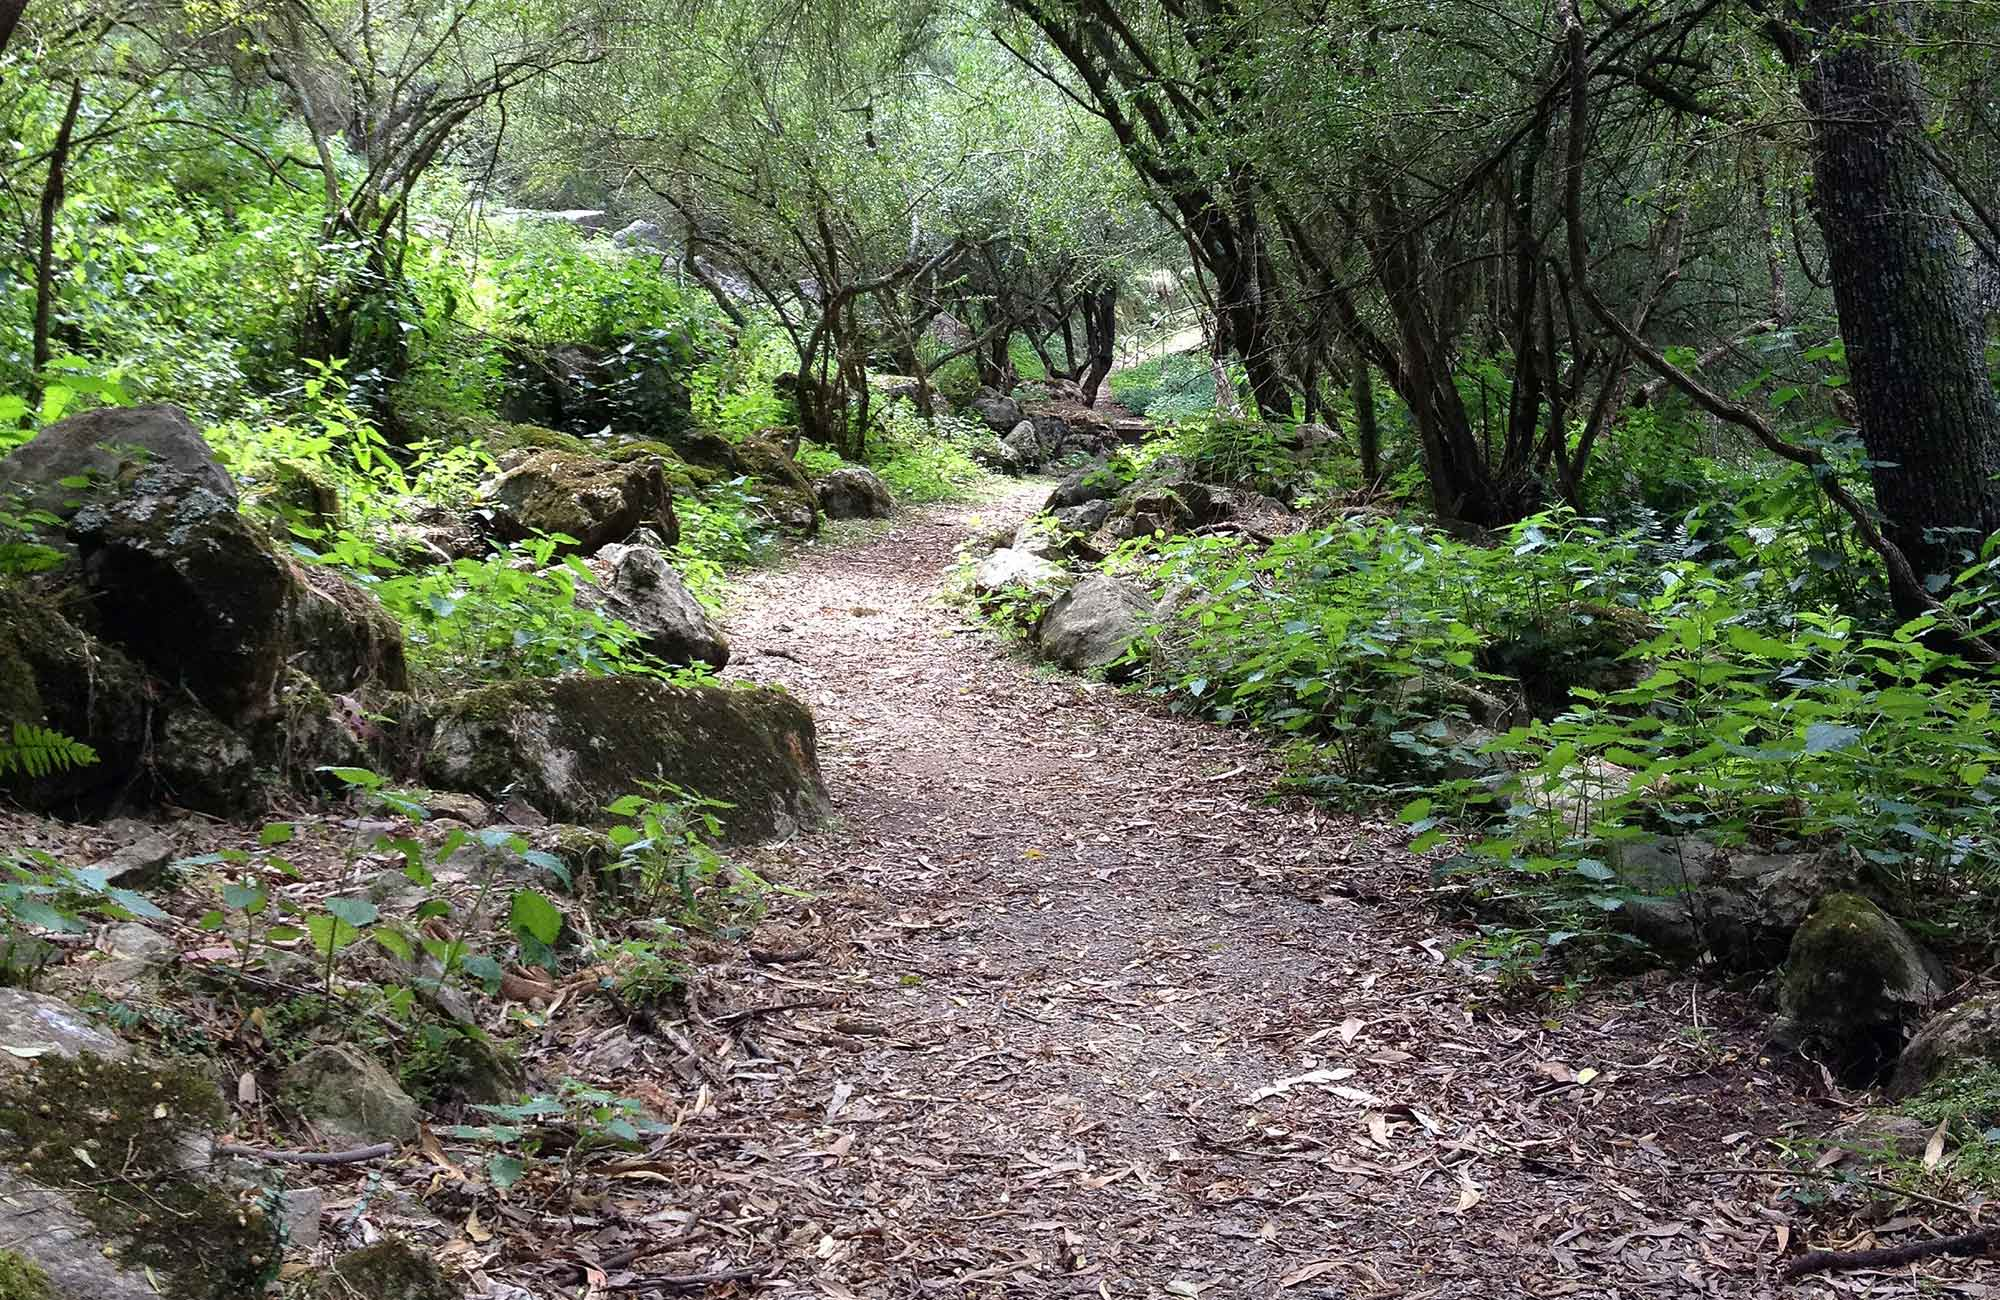 McKeown Valley walking track winds through forested valley at Jenolan Karst Conservation Reserve. Photo: Jenolan Caves Trust/DPIE